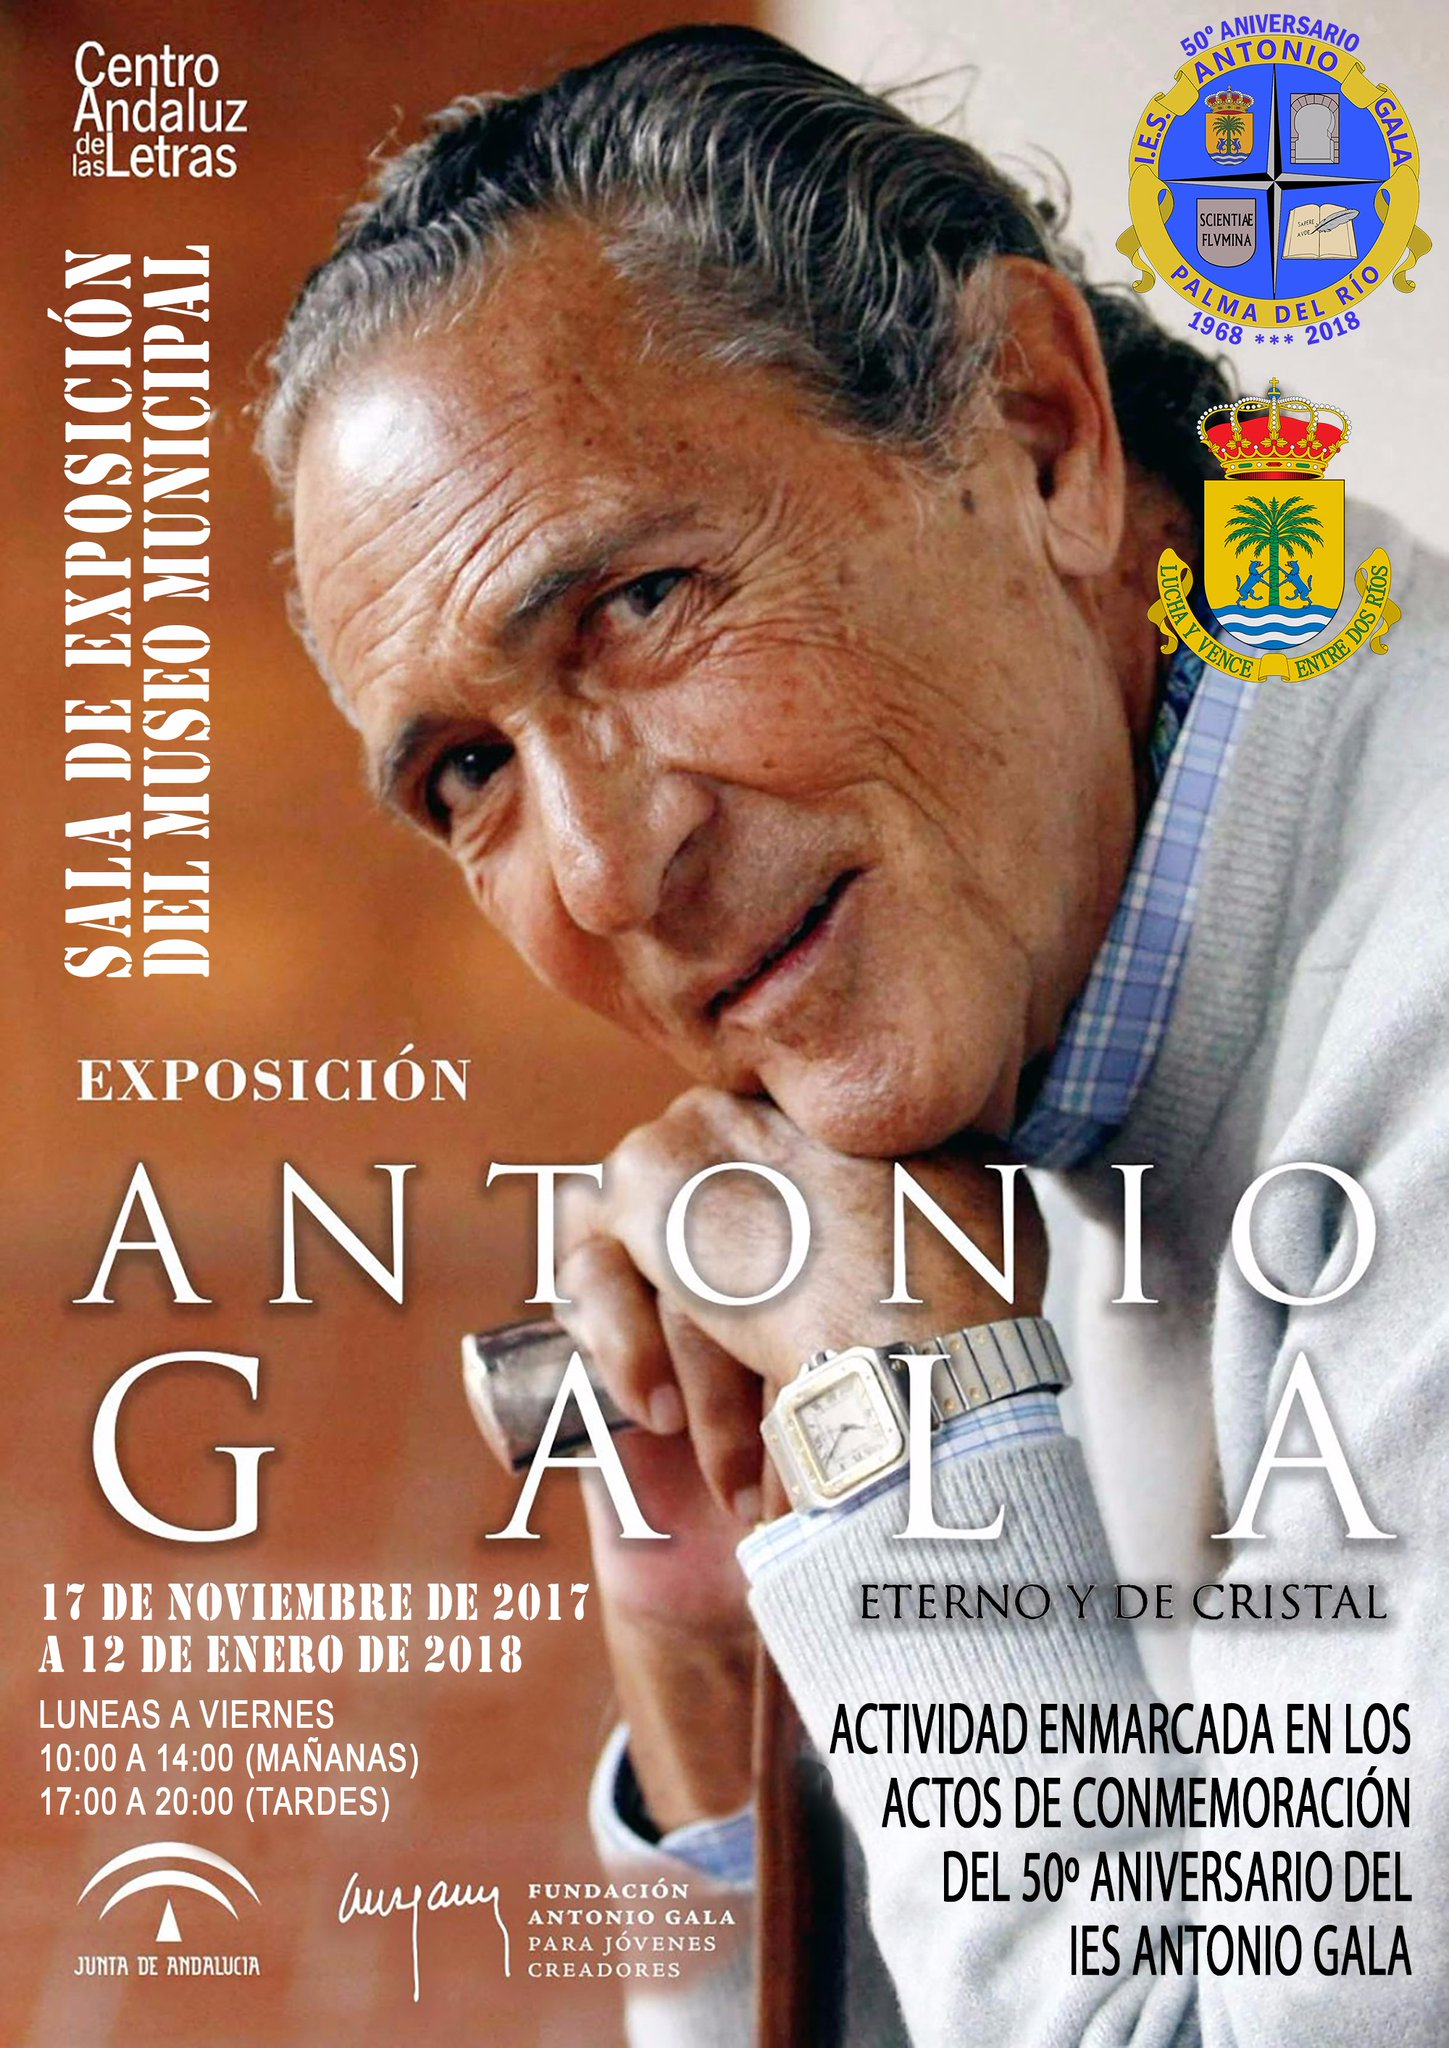 https://www.palmadelrio.es/sites/default/files/antonio_gala_1.jpeg